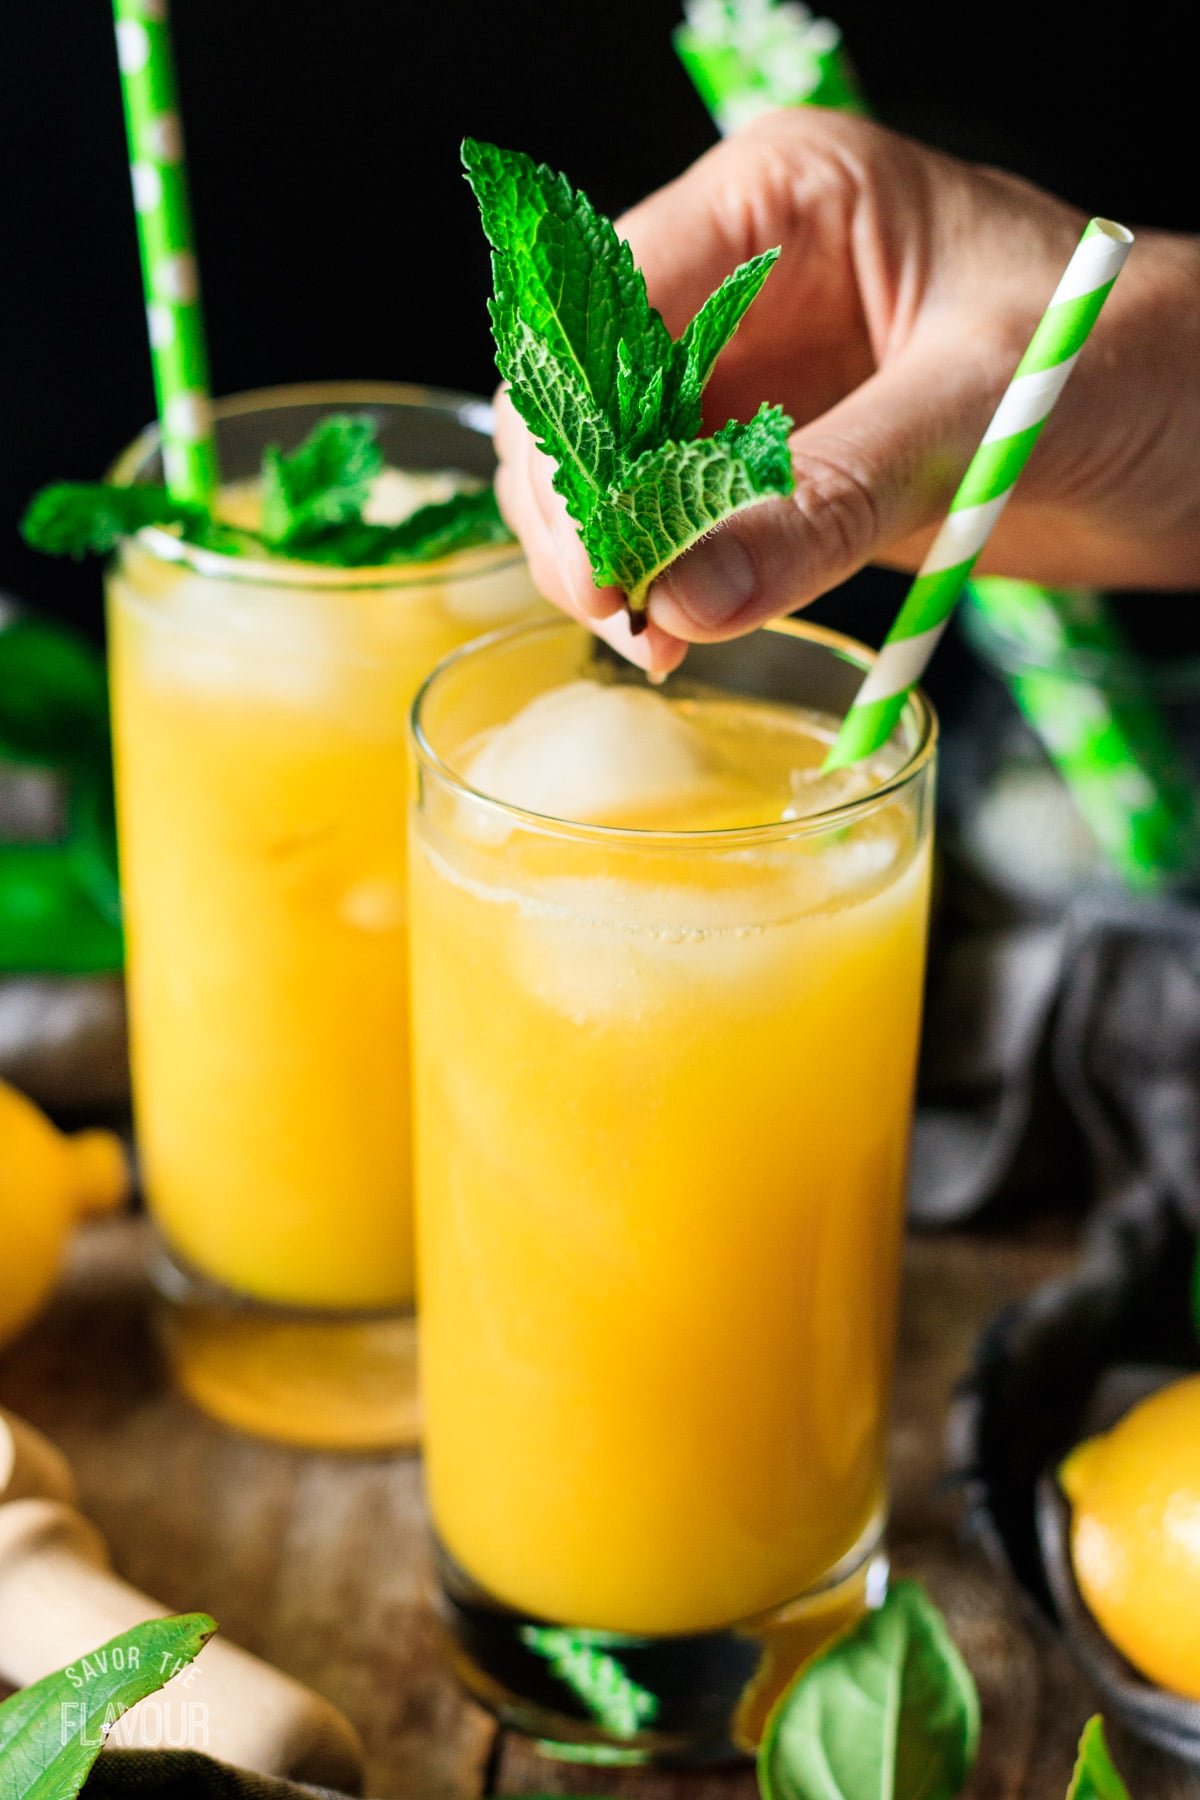 garnishing mango lemonade with a sprig of mint